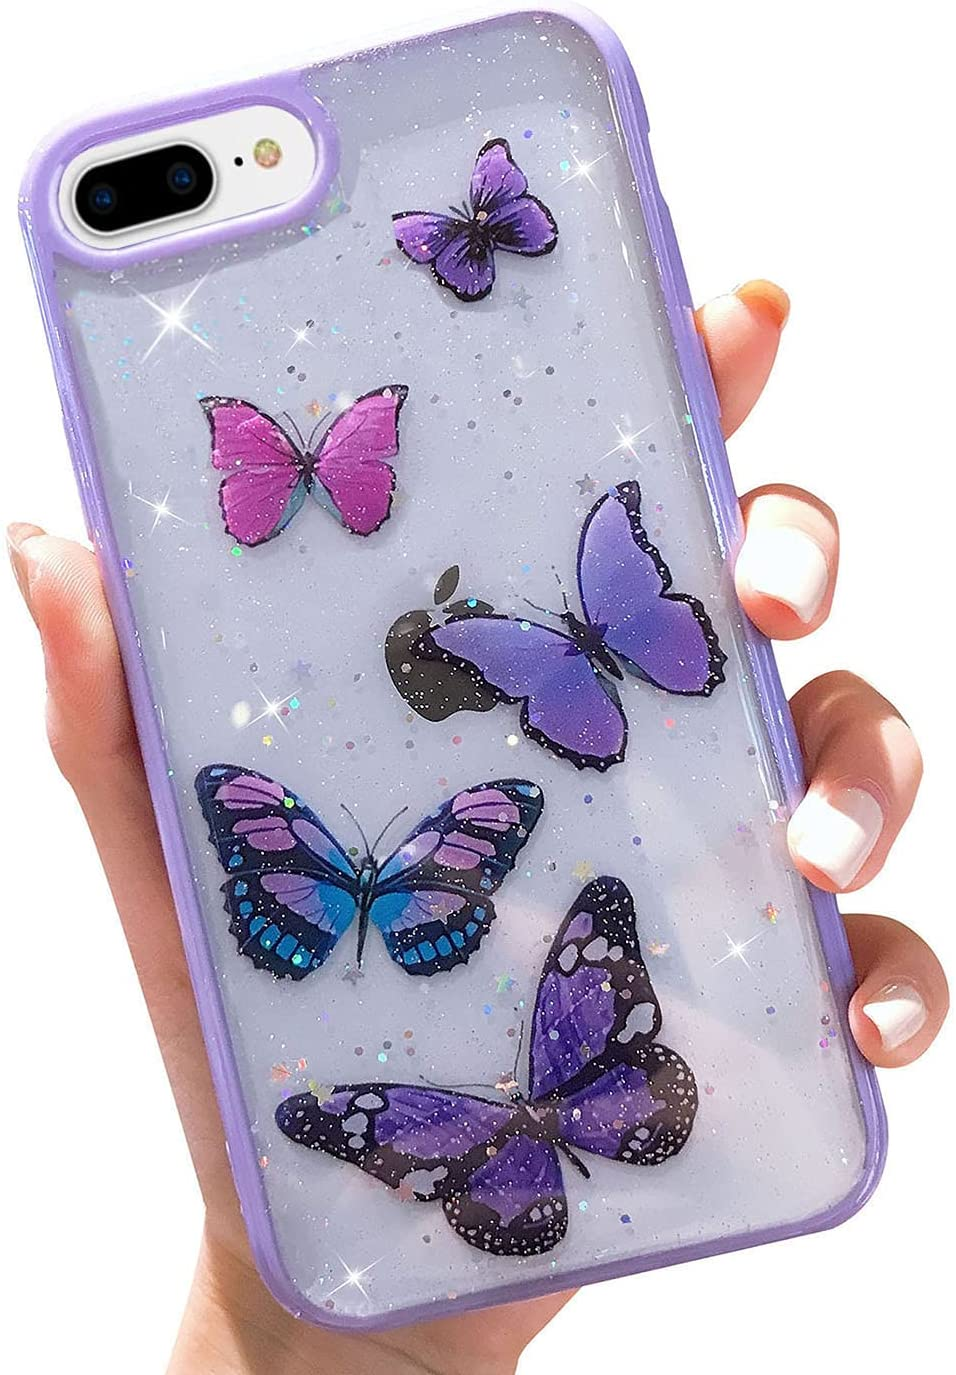 Butterfly Bling Clear Case Compatible with iPhone 8 Plus /7 Plus, wzjgzdly Glitter Case for Women Cute Slim Soft Slip Resistant Protective Phone Case Cover for iPhone 8 Plus / 7 Plus (5.5 inch)-Purple